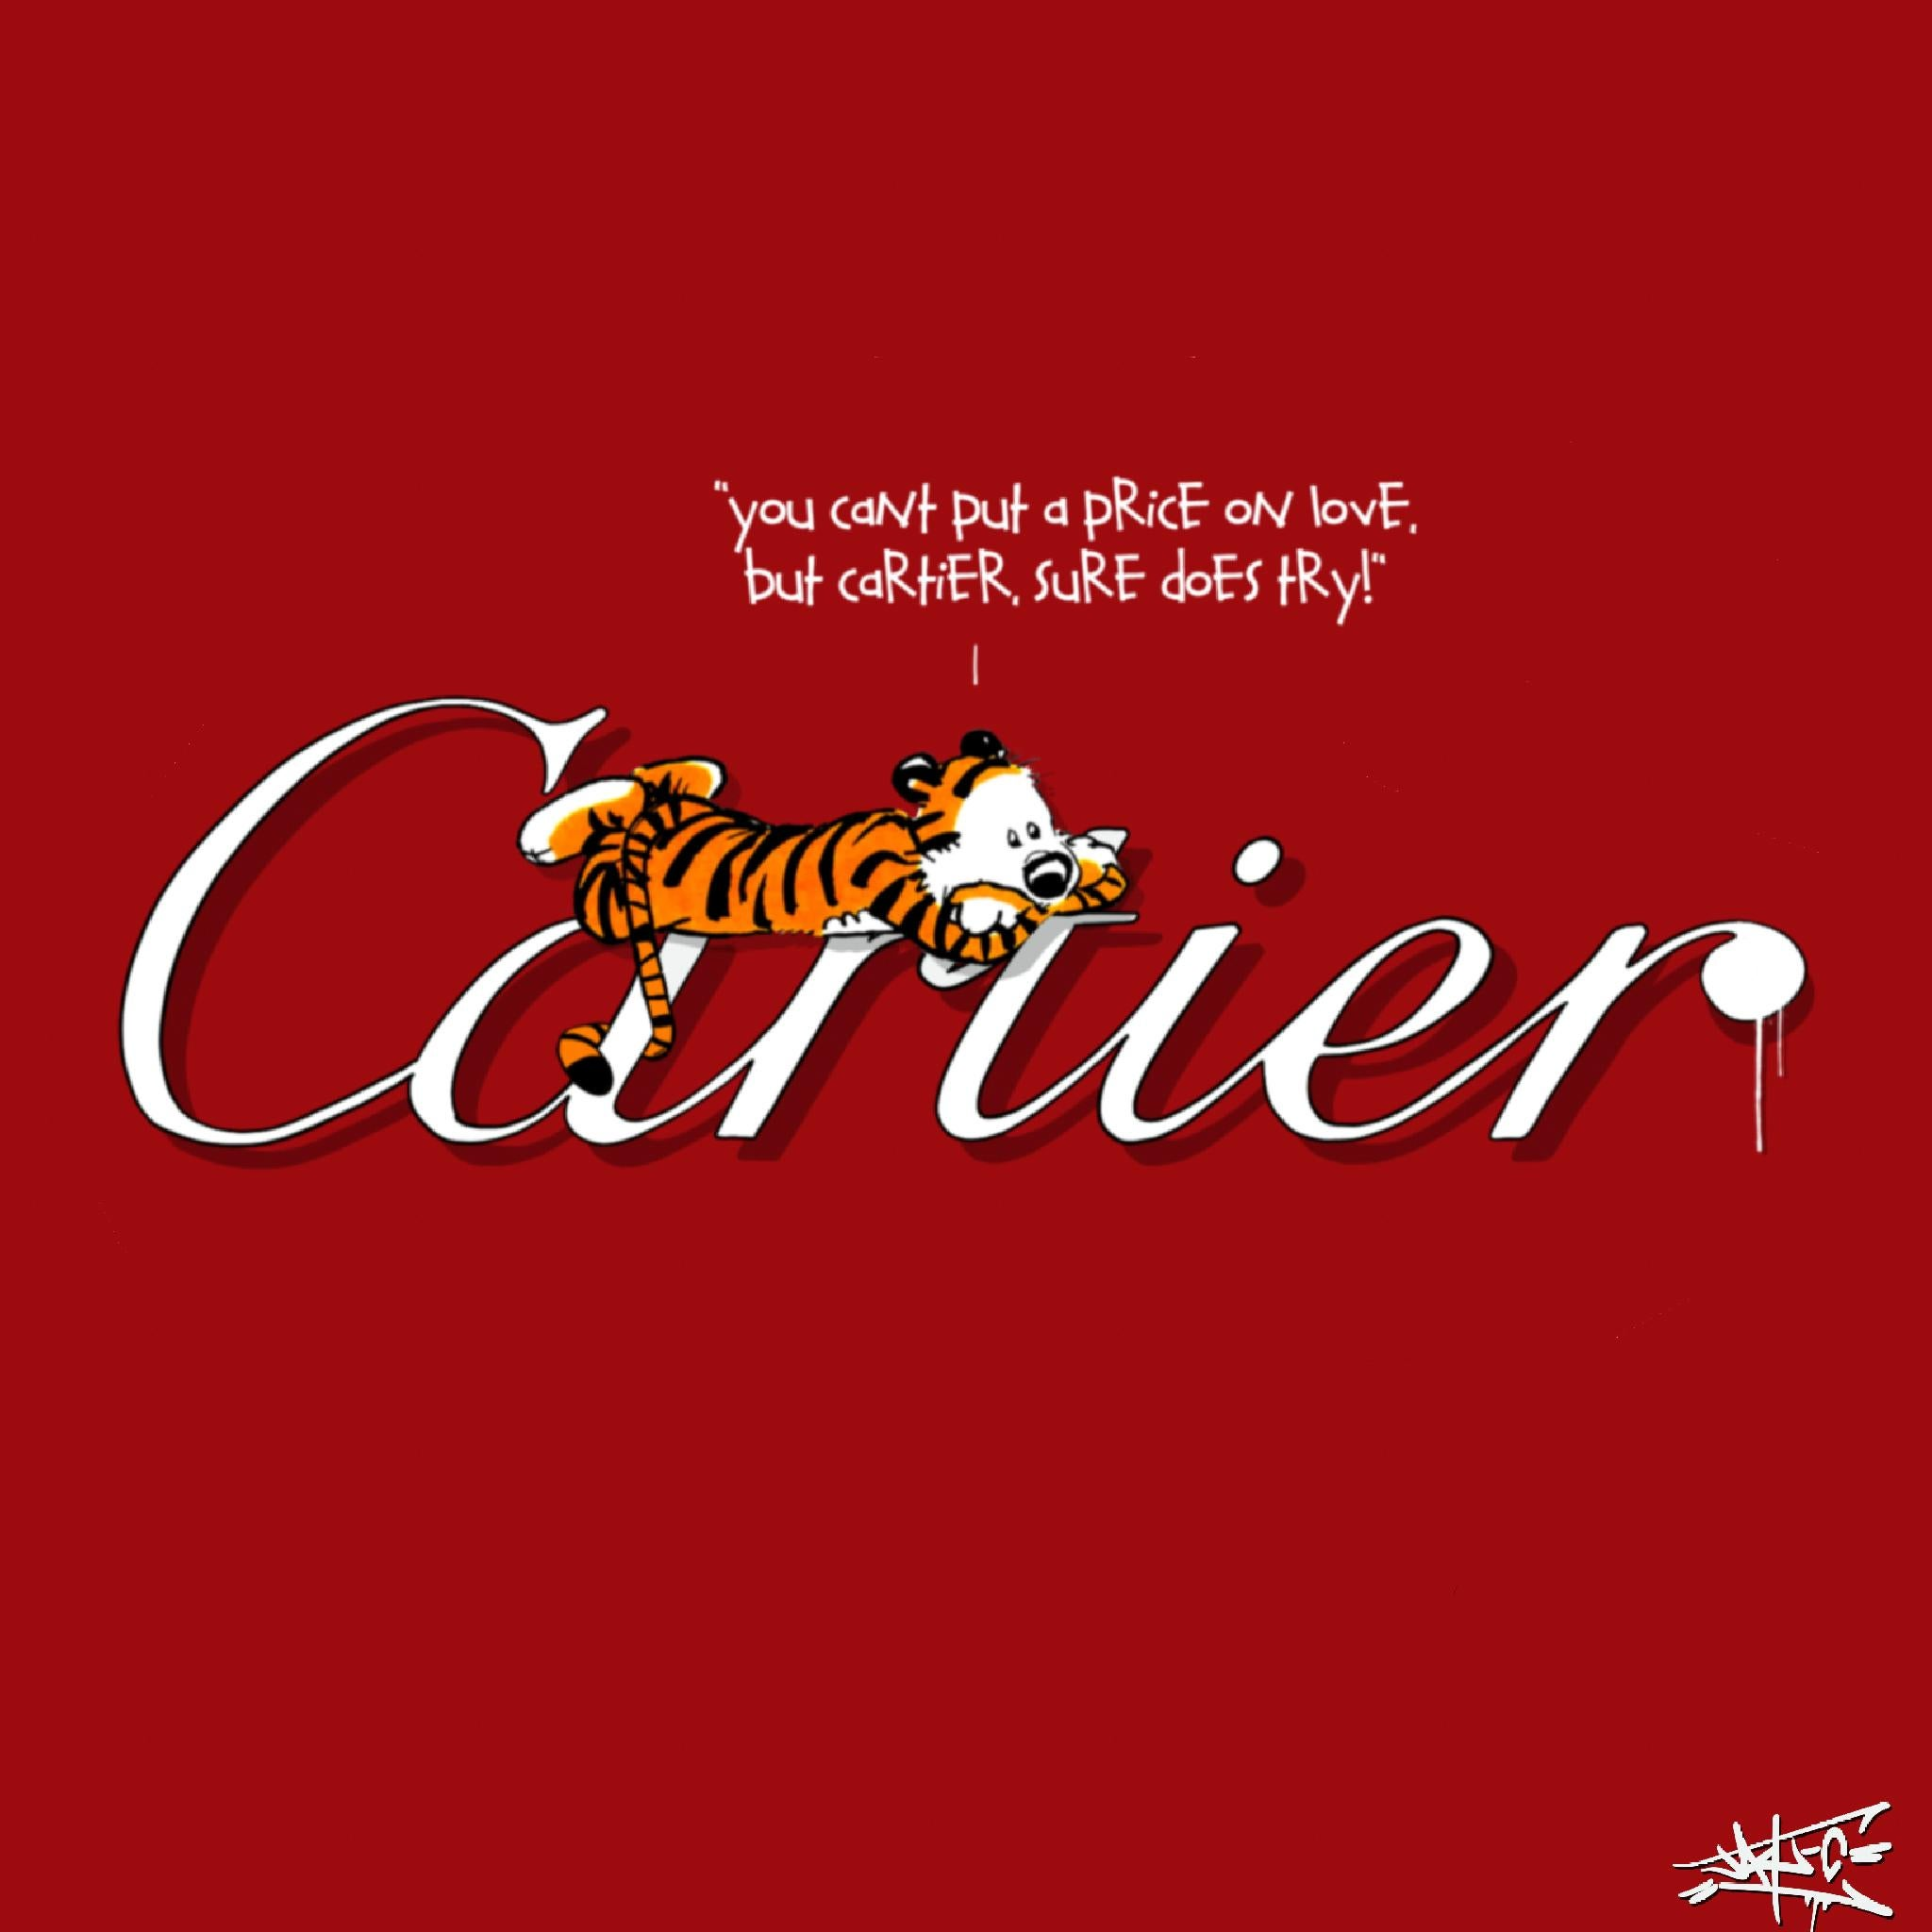 You can't put a price on love, Painting, Pop Art, Street Art, Cartier, tiger